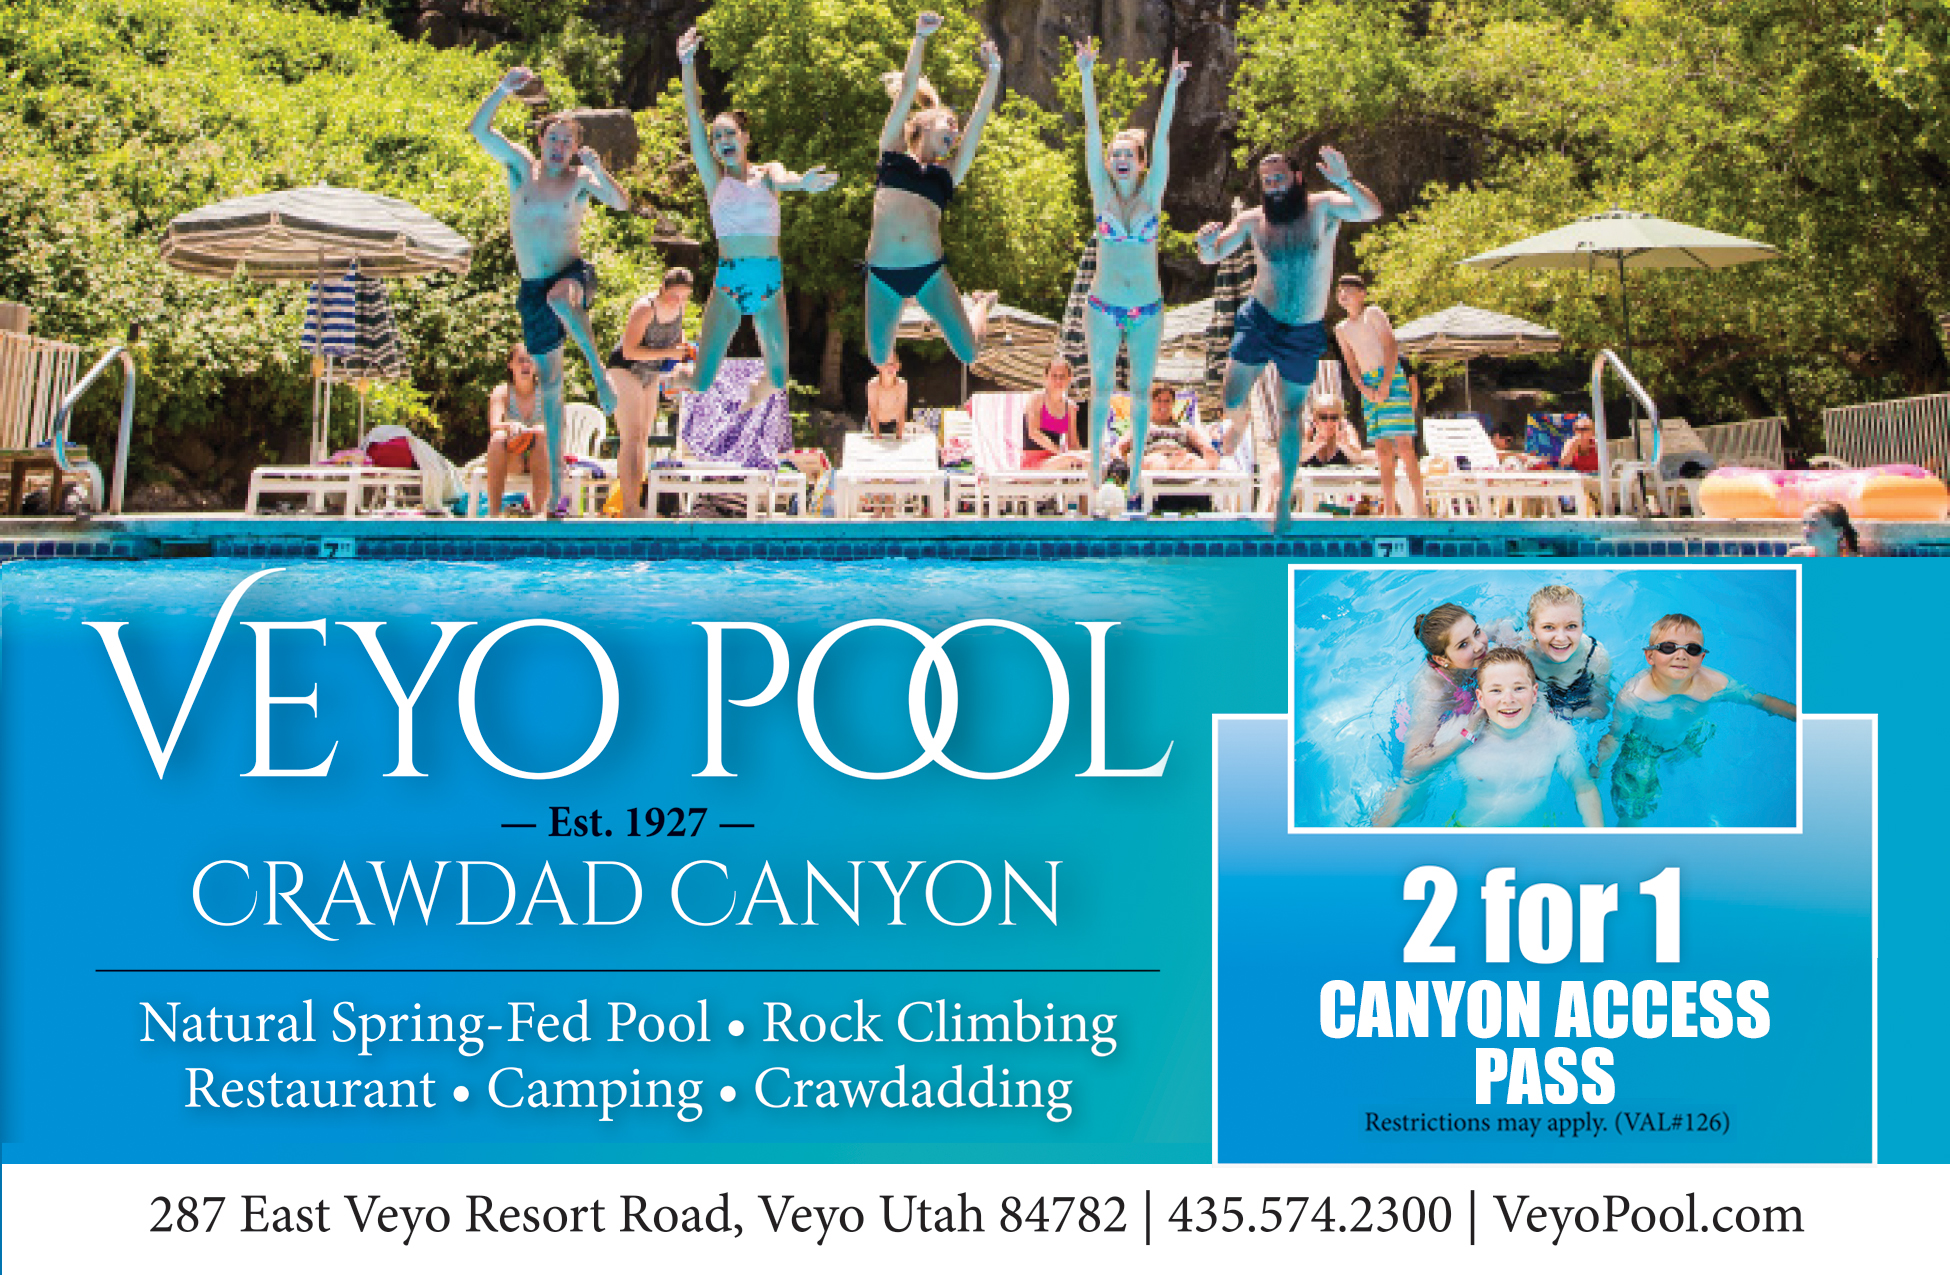 Veyo Pool and Crawdad Canyon - Swimming